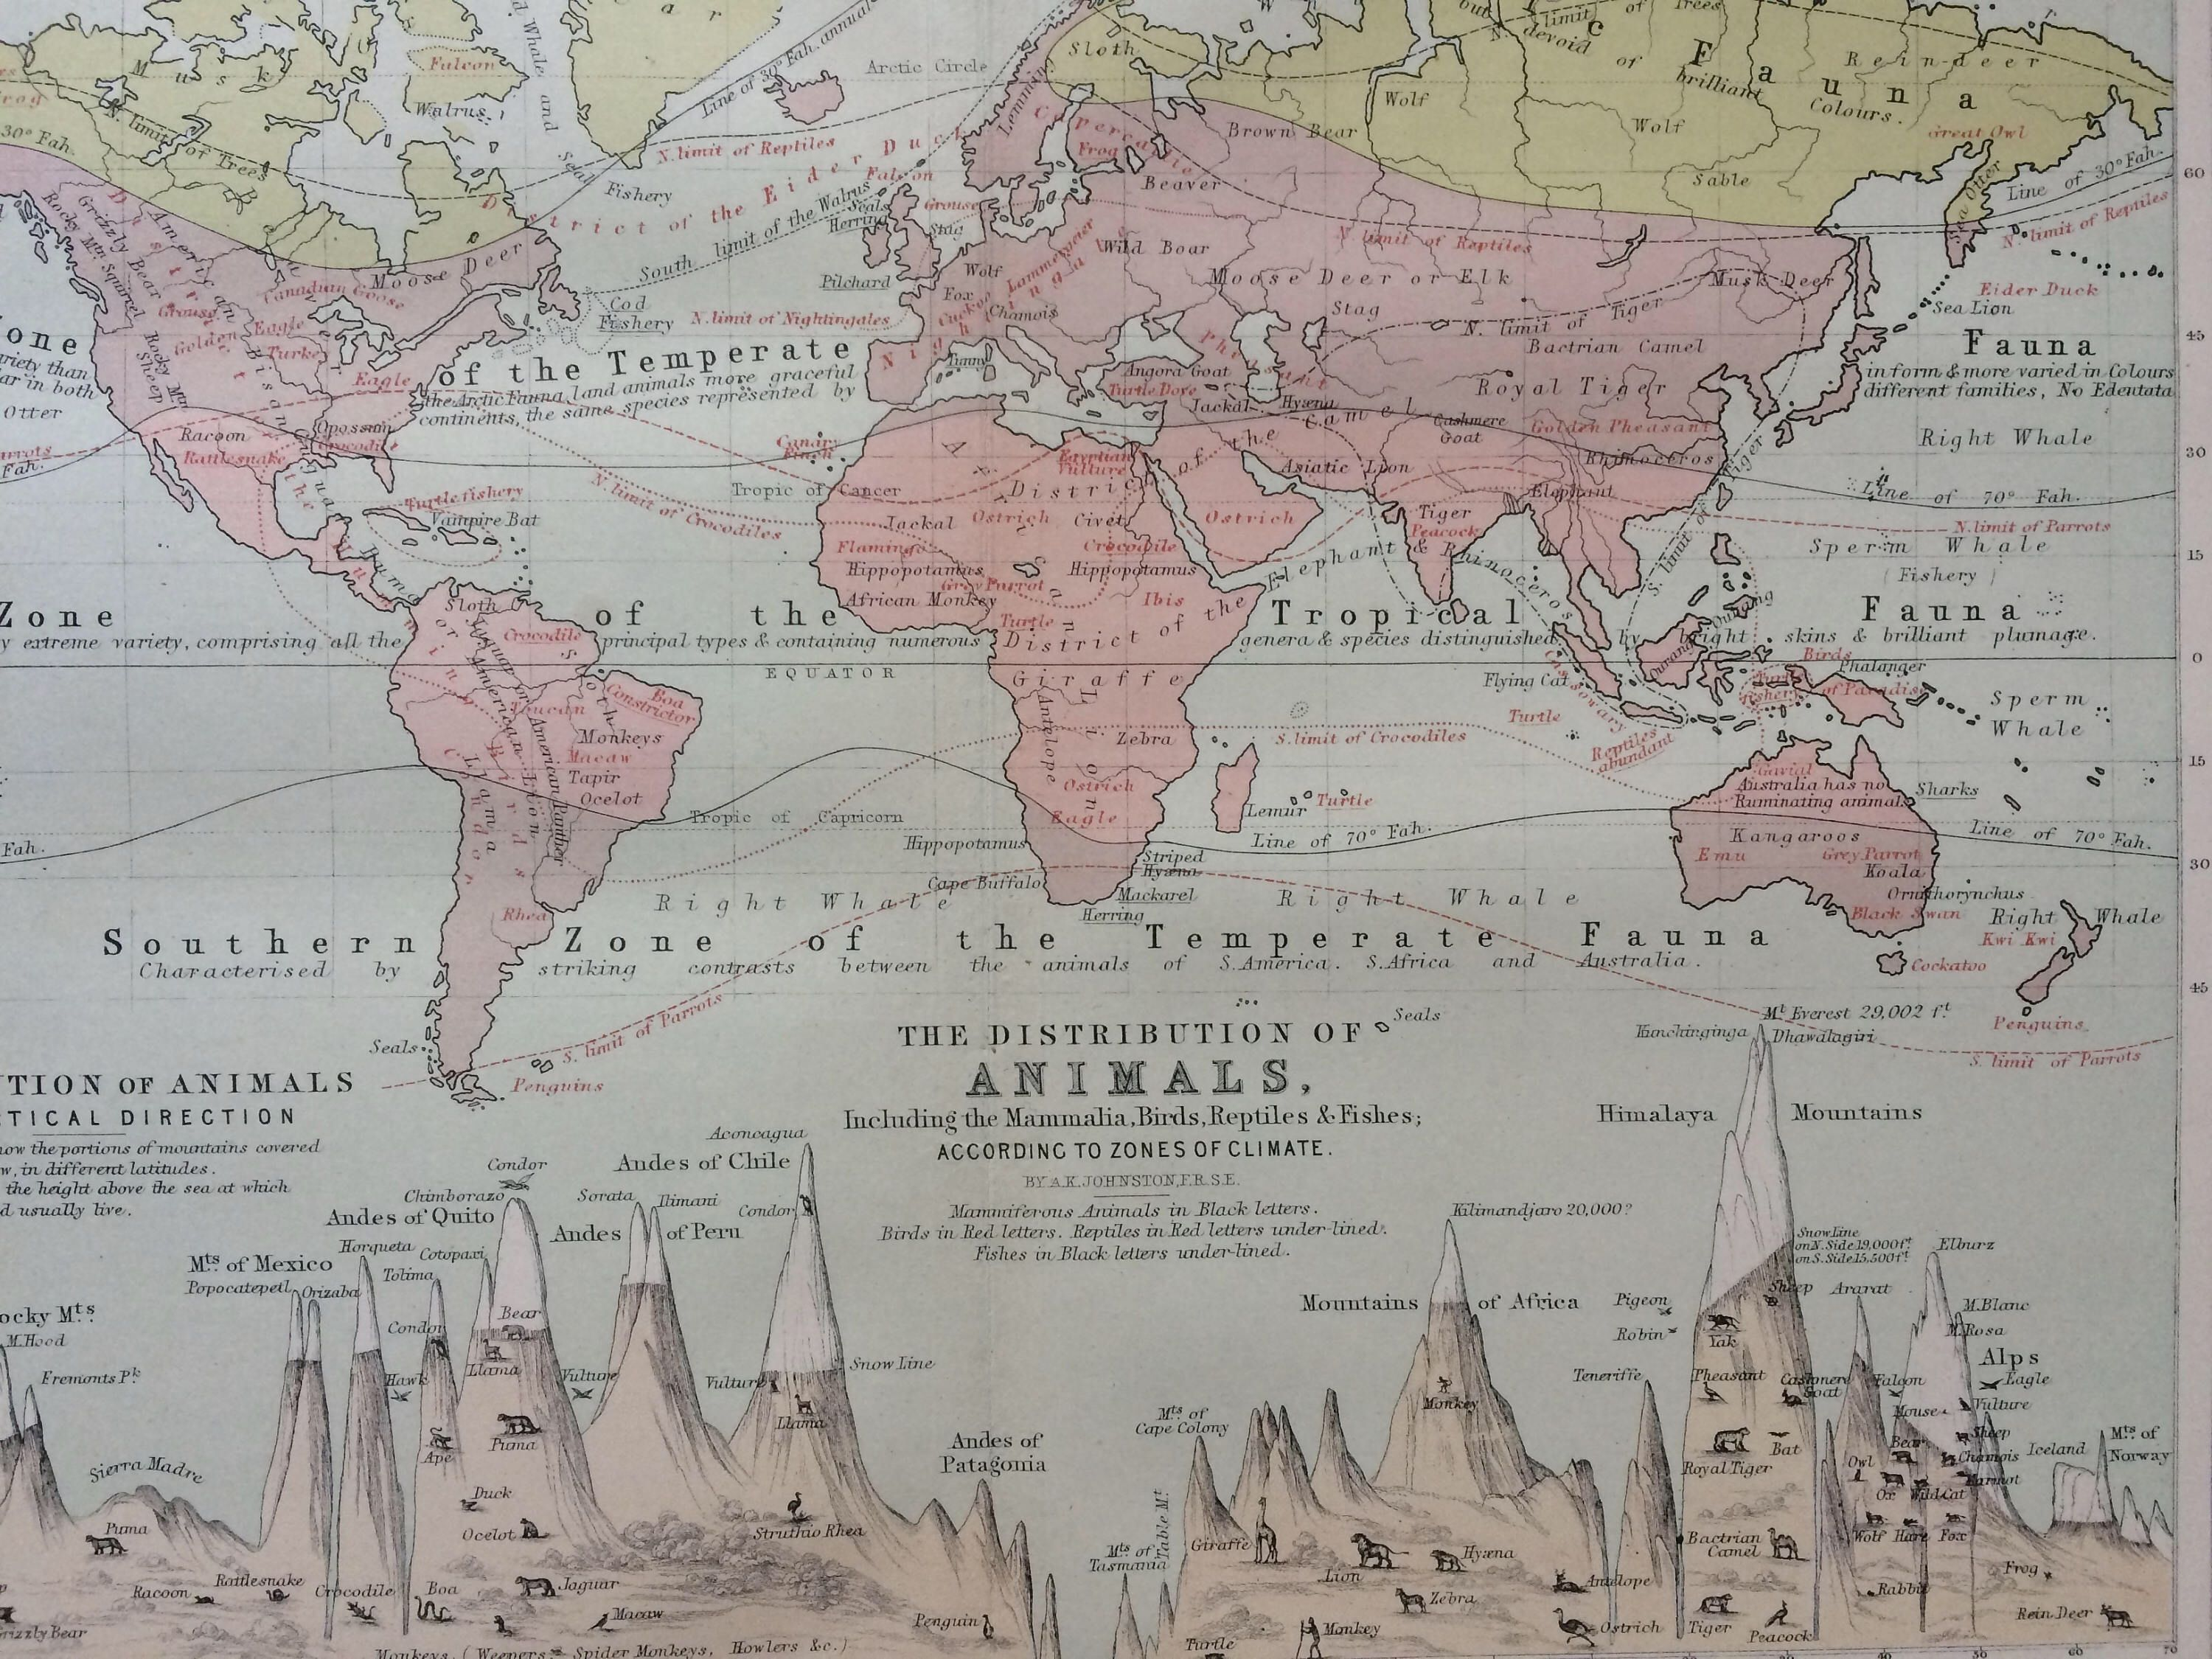 1873 original antique world map showing the distribution of animals 1873 original antique world map showing the distribution of animals according to zones of climate and gumiabroncs Image collections